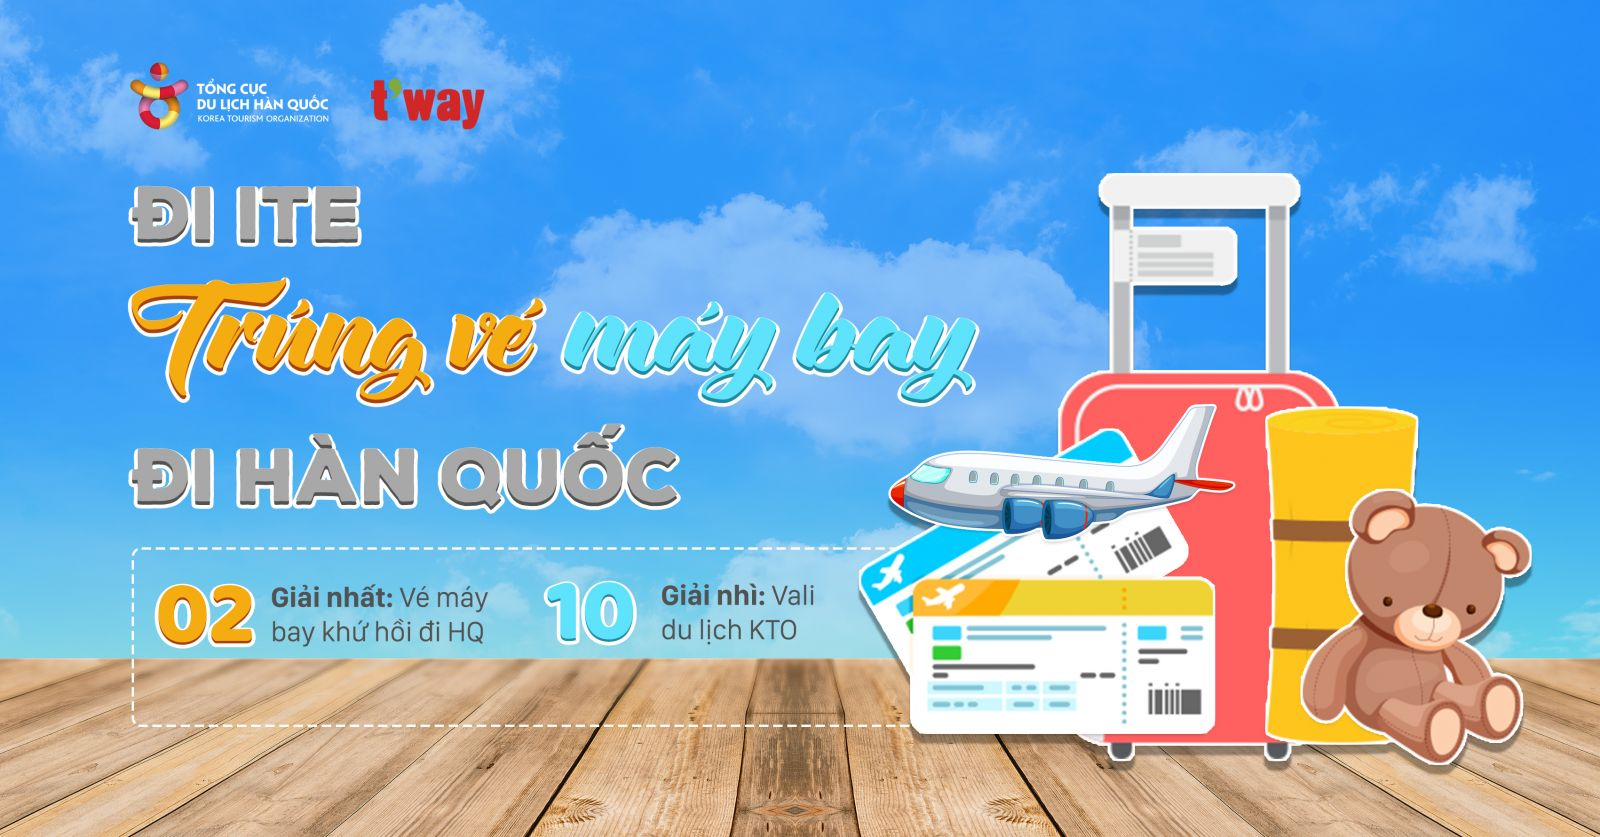 event di ite trung ve may bay di han quoc